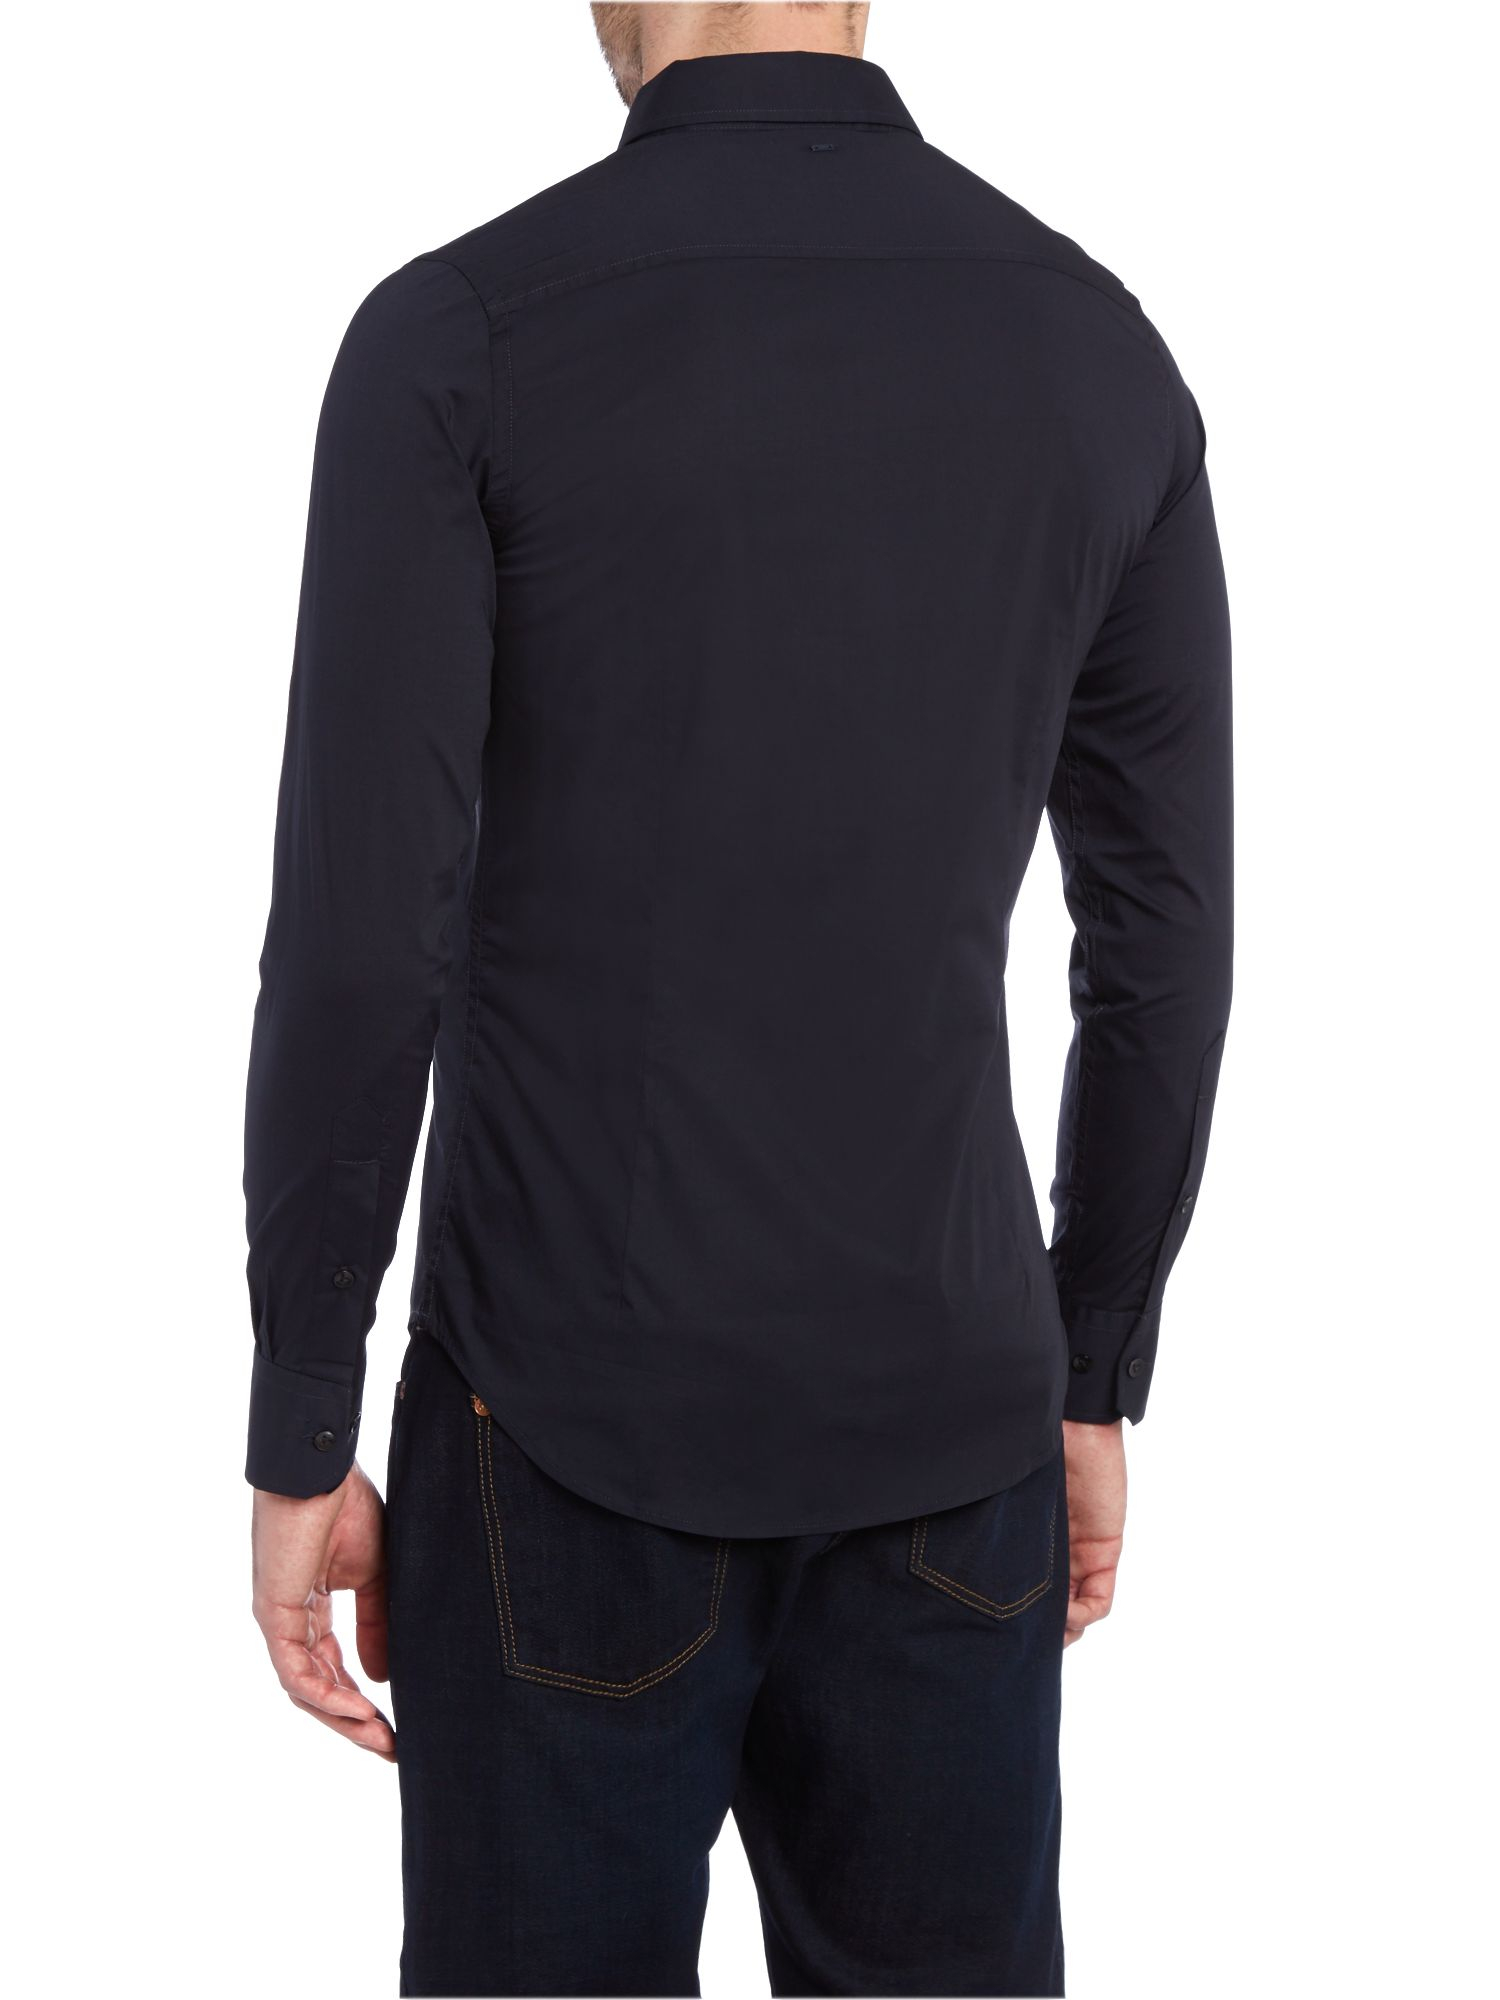 We've got the fix: The Lightweight Longtail T® Long Sleeve Shirt. Shop now. Free Shipping on Orders Over $ Free Shipping on your order of $50 or more. $50 minimum order requirement applies to the order total before taxes, shipping, gift packaging, and gift cards.